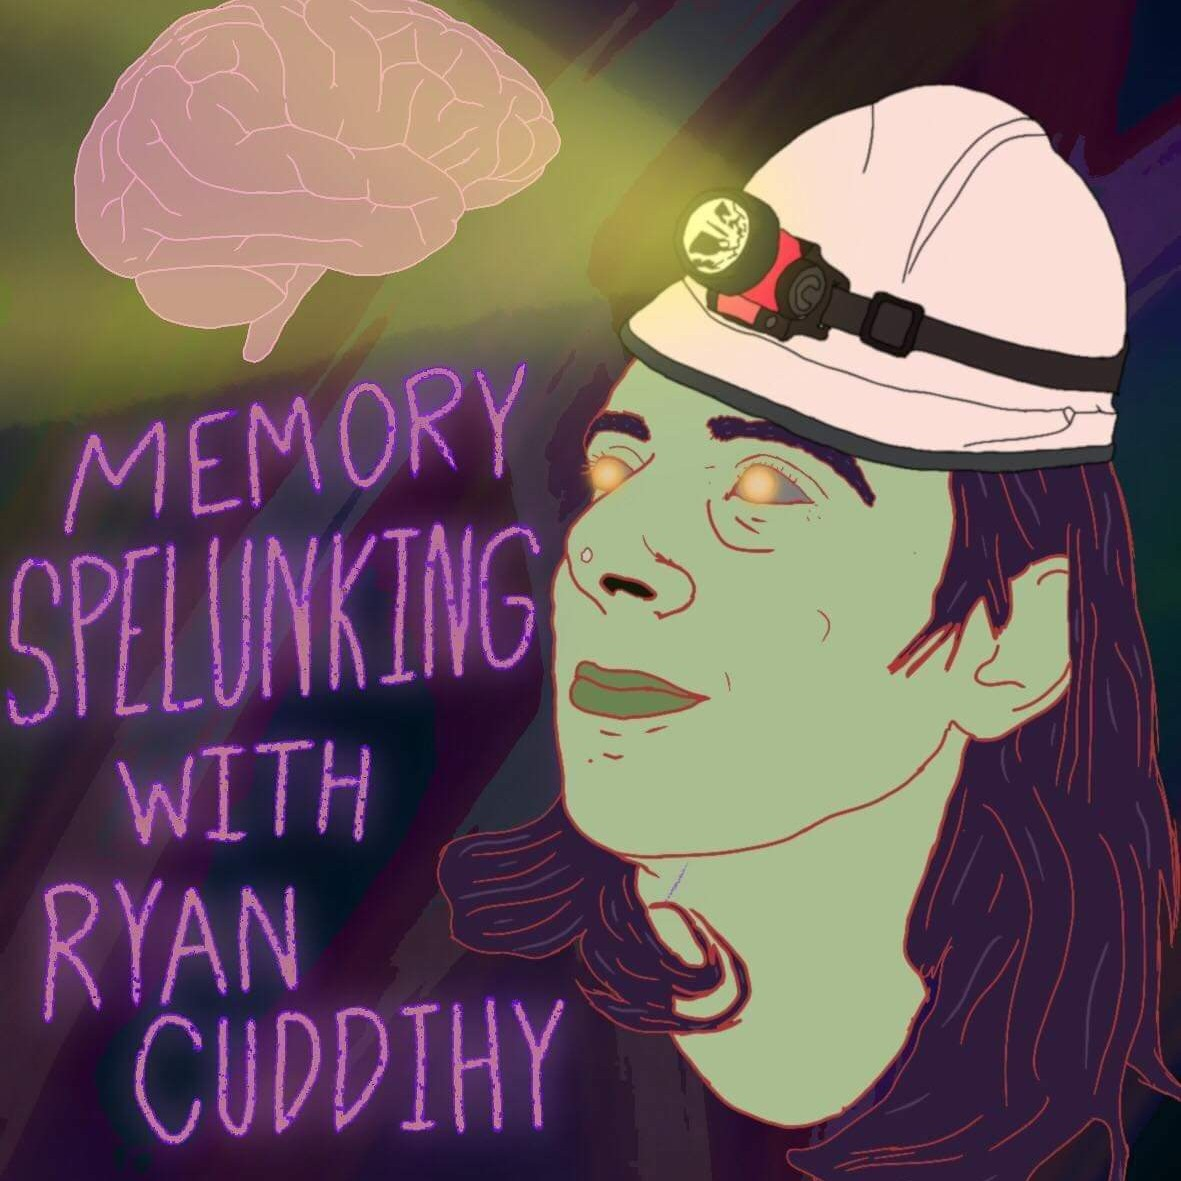 """""""Wet Wet Wet Wet"""" Memory Spelunking with Ryan Cuddihy"""